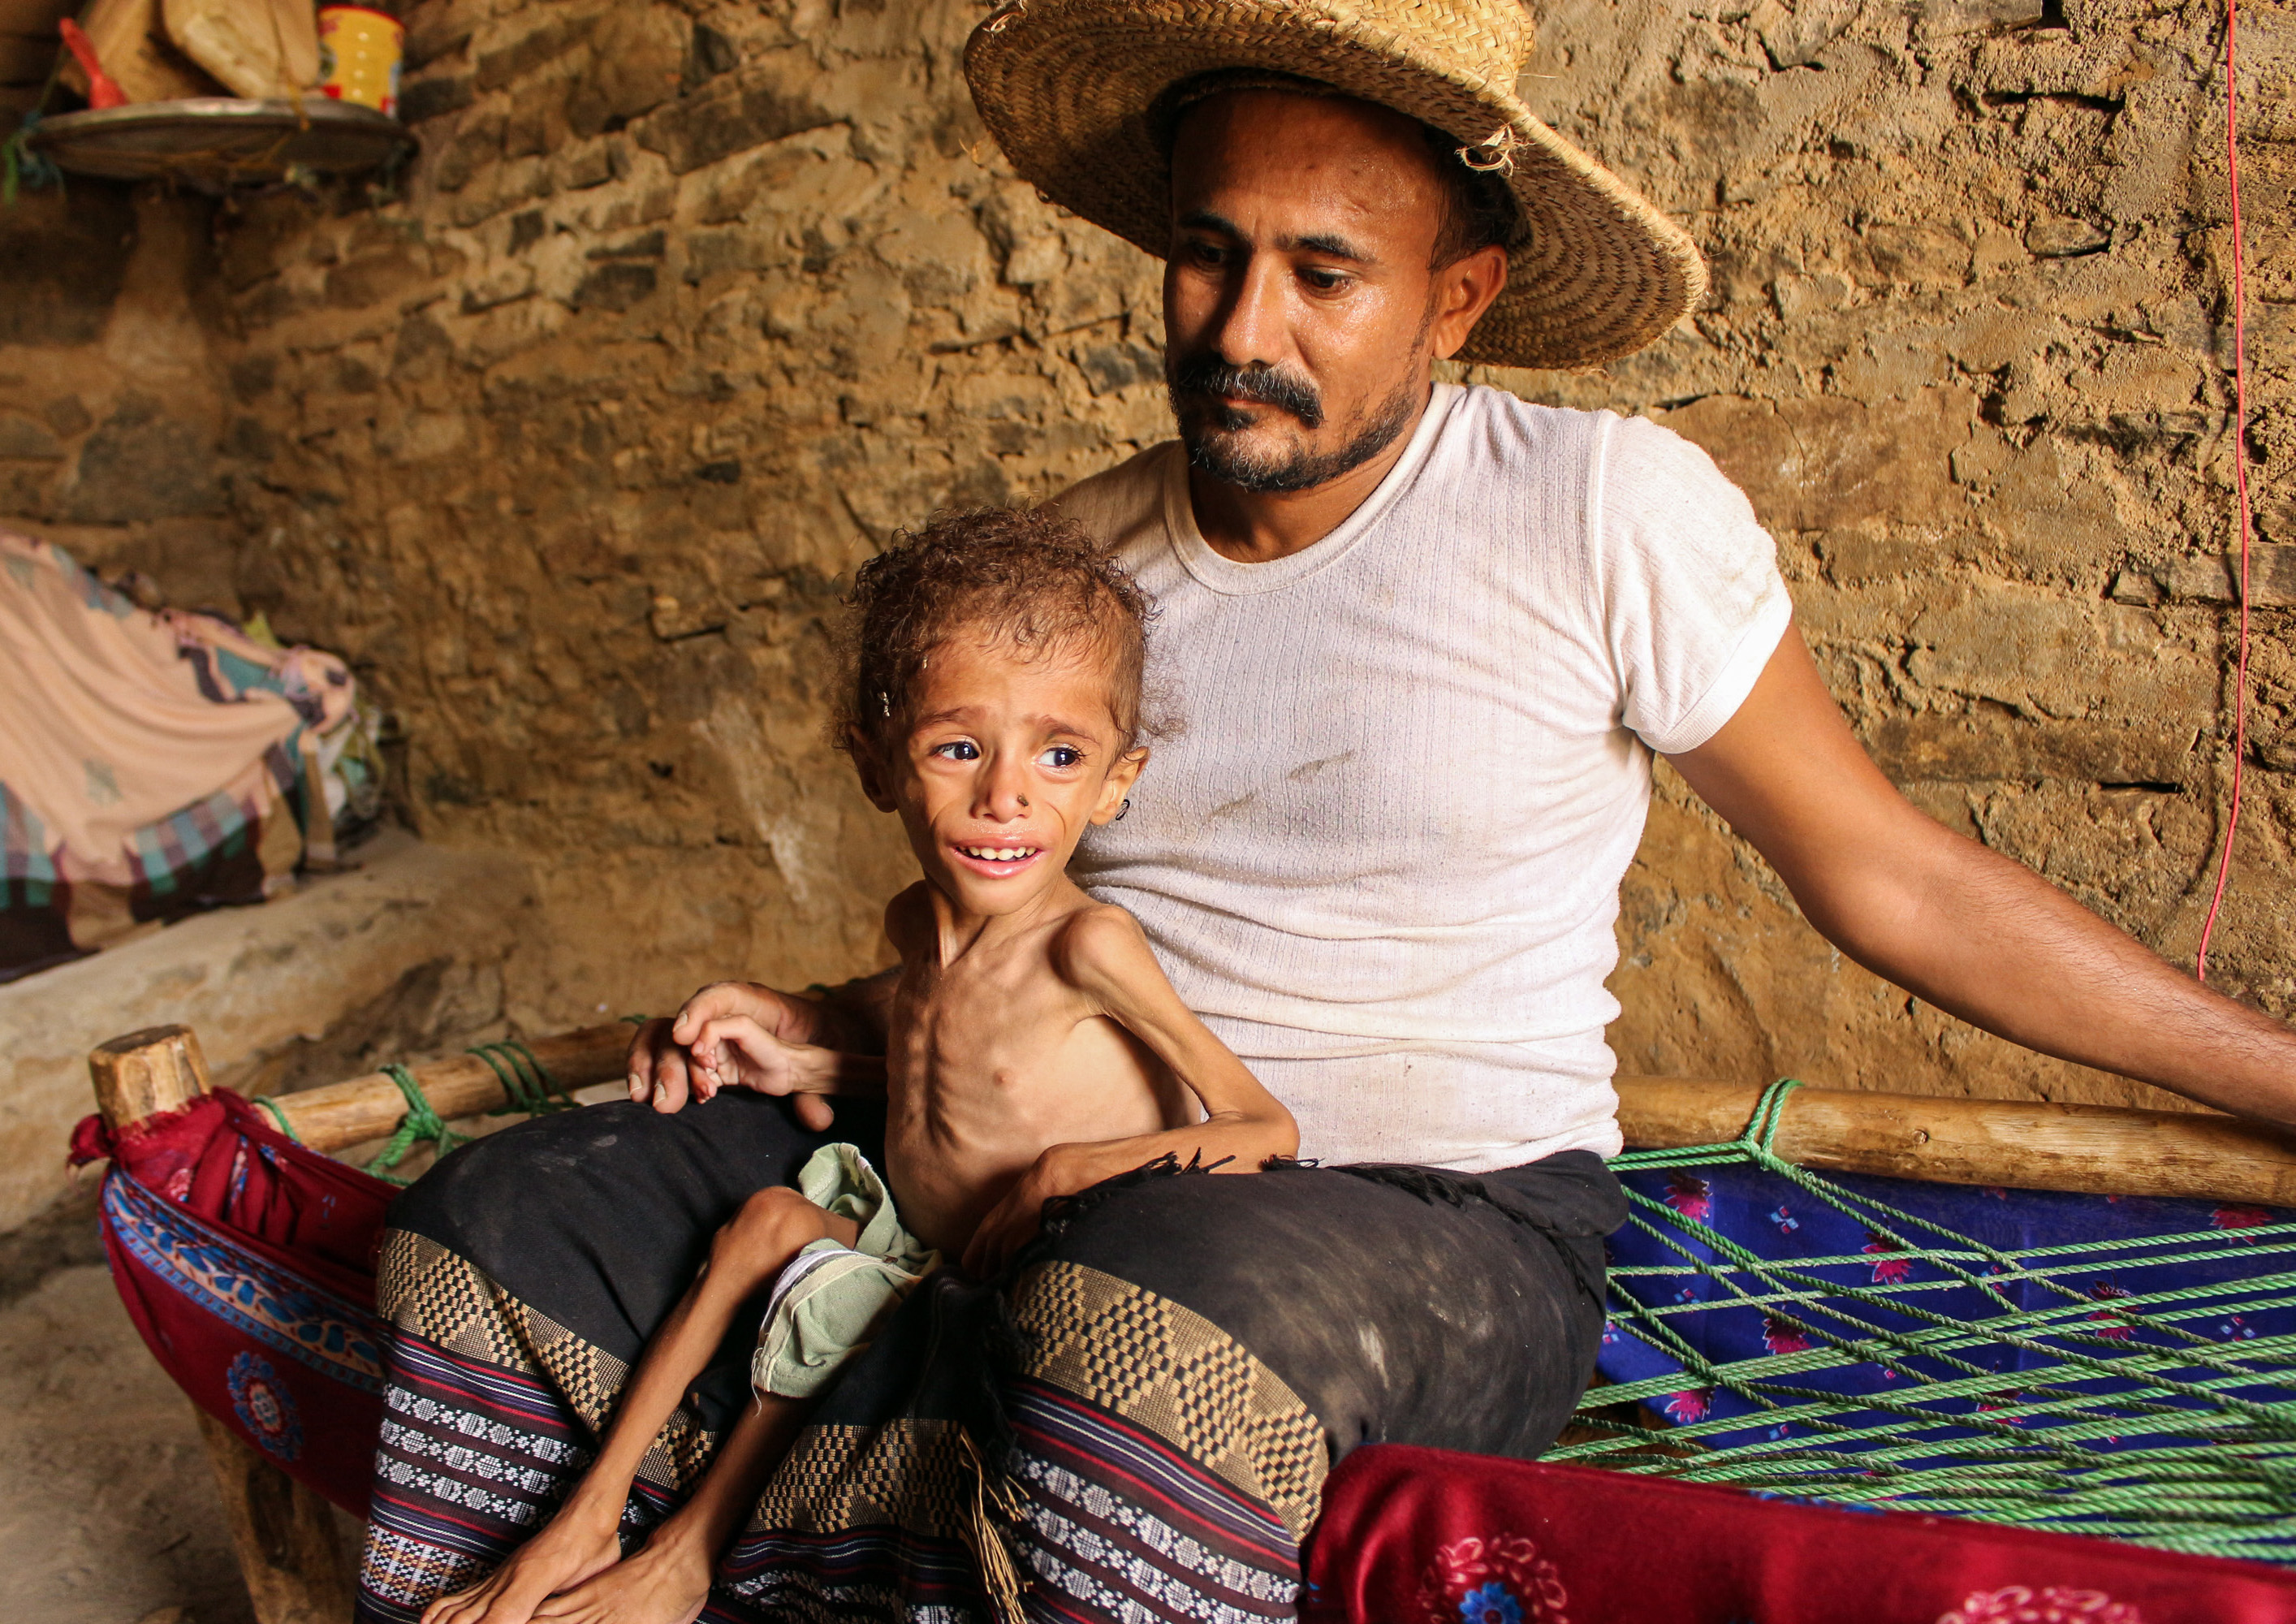 EDITORS NOTE: Graphic content / Moaz Ali Mohammed, a two-year-old Yemeni boy from an impoverished family in the Bani Amer region, who suffers from acute malnutrition and weighing eight kilograms, sits on his father's lap at their house in the Aslam district in the northern Hajjah province on July 28, 2019. - The boy's impoverished family reportedly cannot afford to transport him for treatment at the nearest malnutrition-treatment centre, about 30 kilometres away from their home. (Photo by ESSA AHMED / AFP)